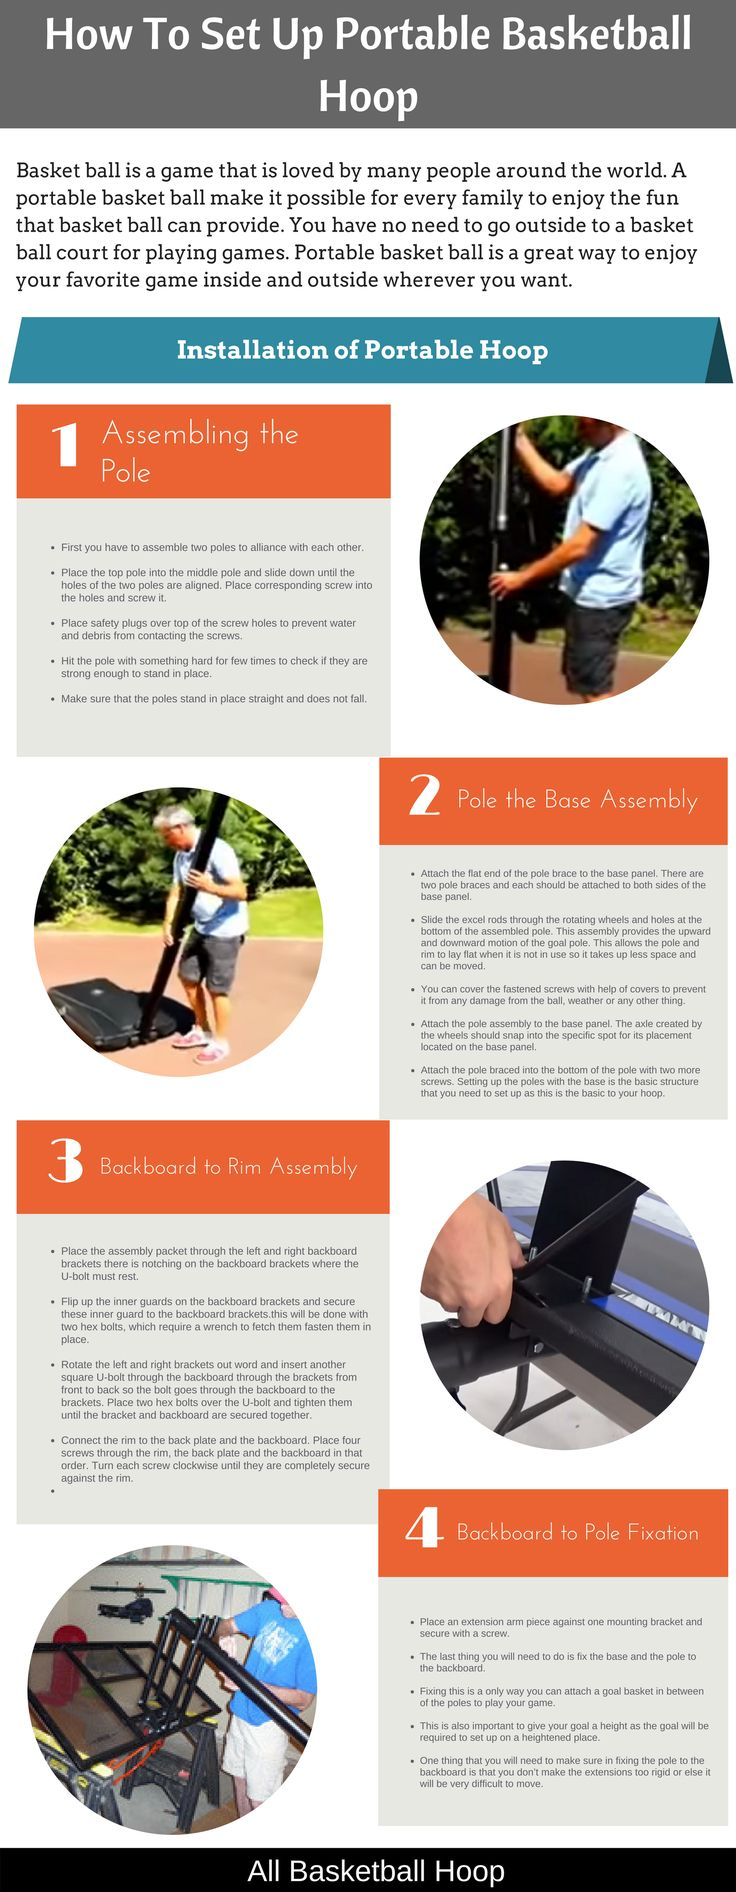 A Brief infographics on how to set up portable basketball hoops in a few simple steps in 5-10 Mins